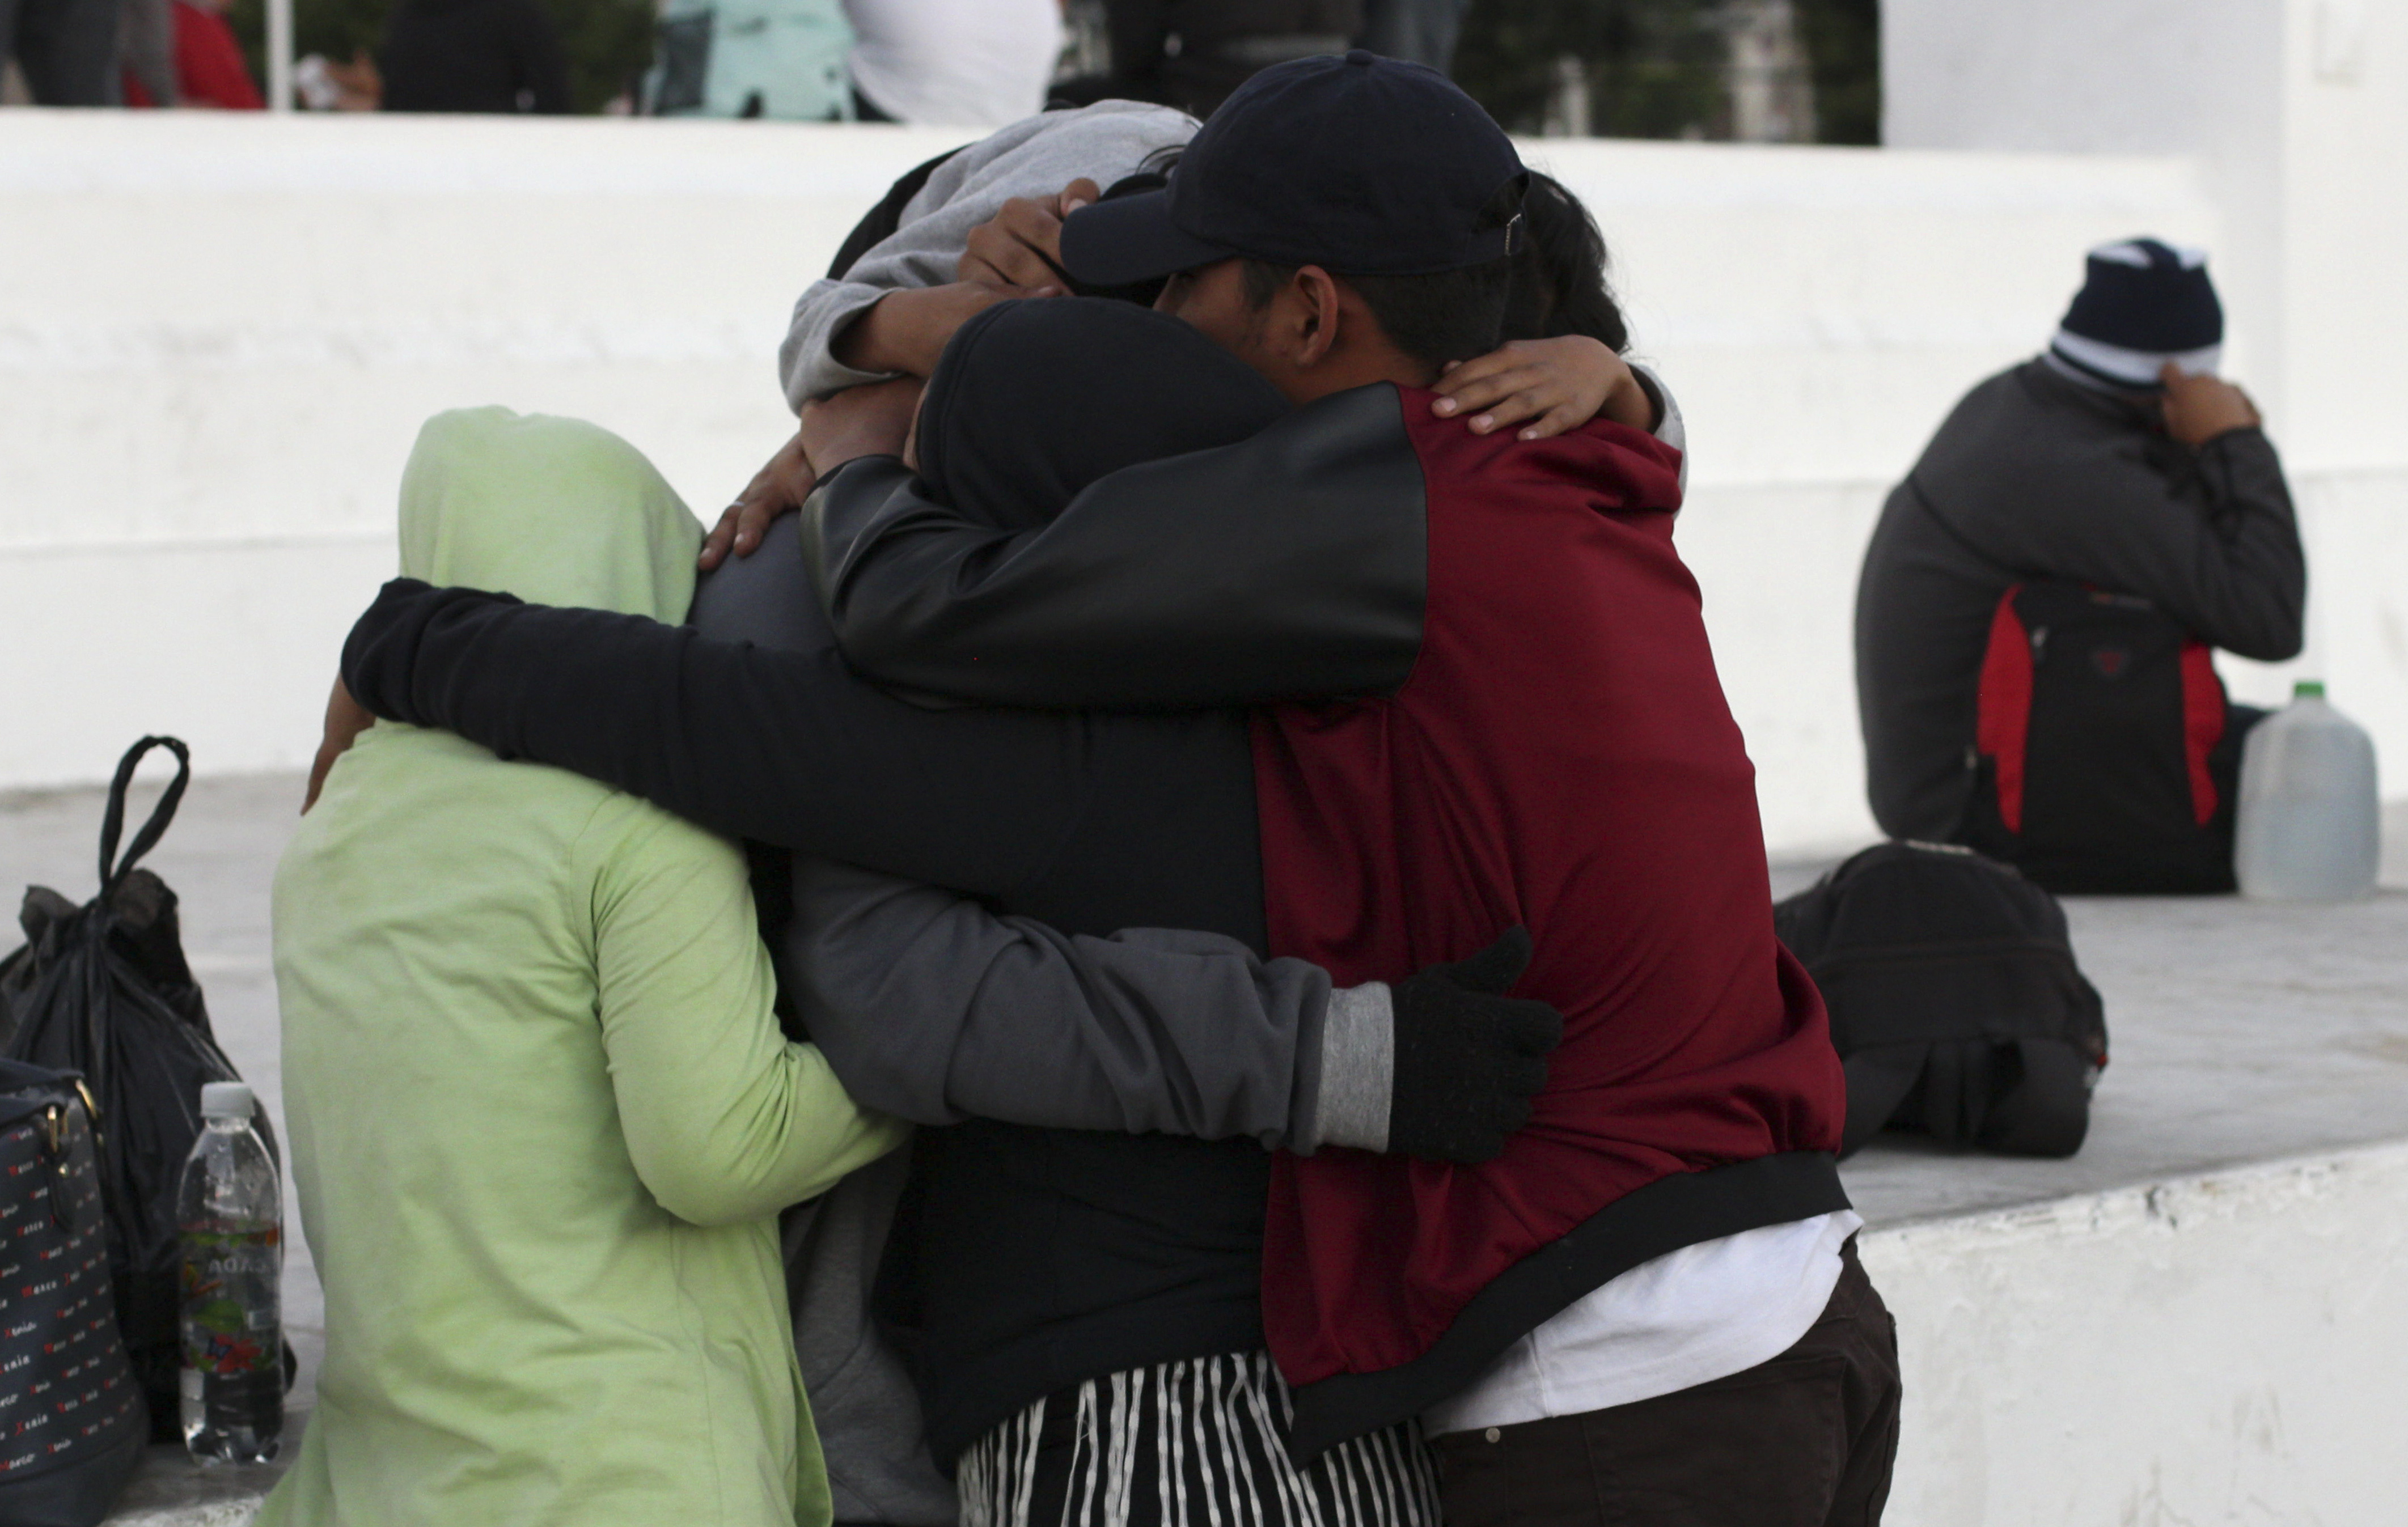 A man hugs his family before setting off toward the U.S. border with a migrant caravan from San Salvador, El Salvador, Wednesday, Jan. 16, 2019. Migrants fleeing Central America's Northern Triangle region comprising Honduras, El Salvador and Guatemala routinely cite poverty and rampant gang violence as their motivation for leaving. (AP Photo/Salvador Melendez)